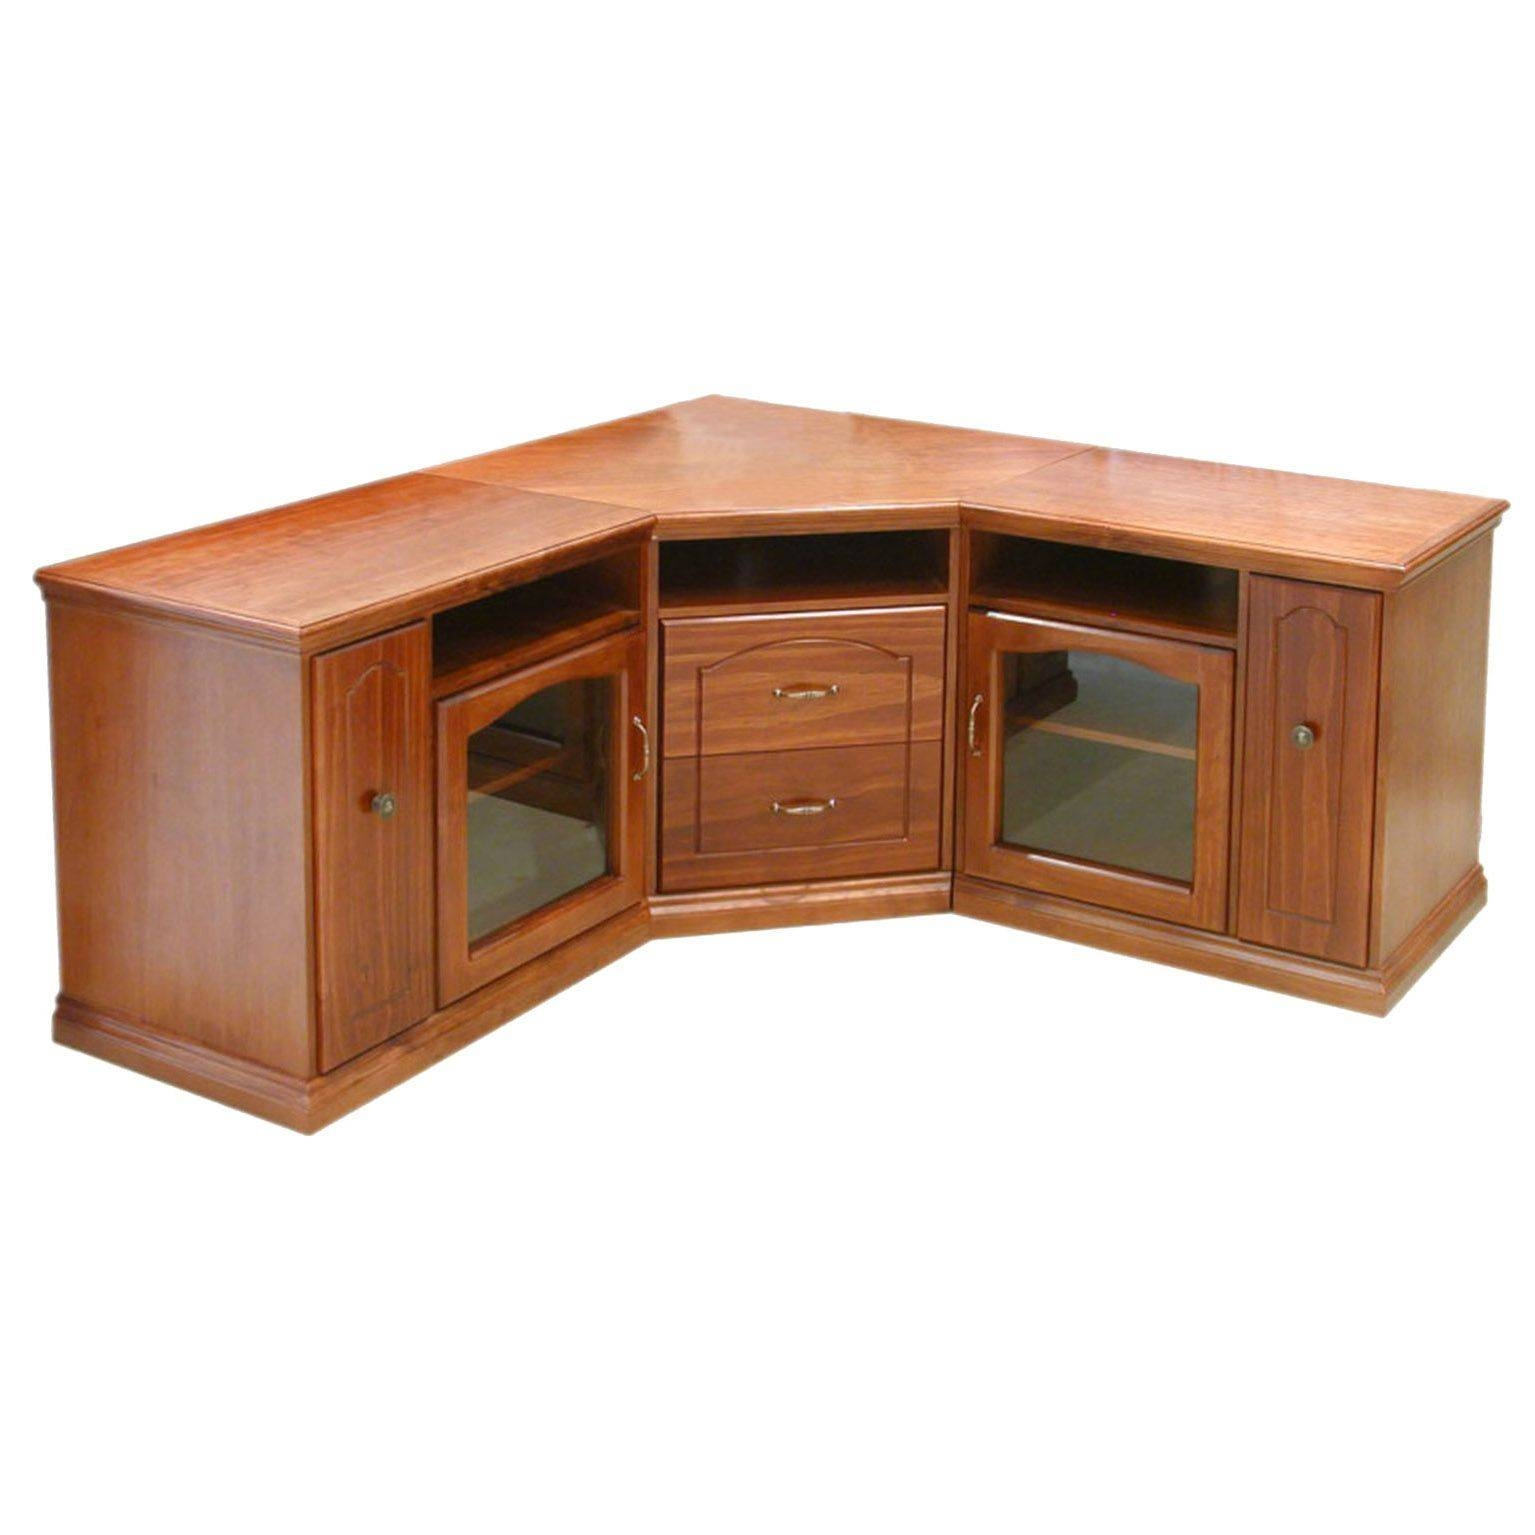 Barossa Corner Tv Unit - Wohlers throughout Corner Sideboard Units (Image 5 of 30)